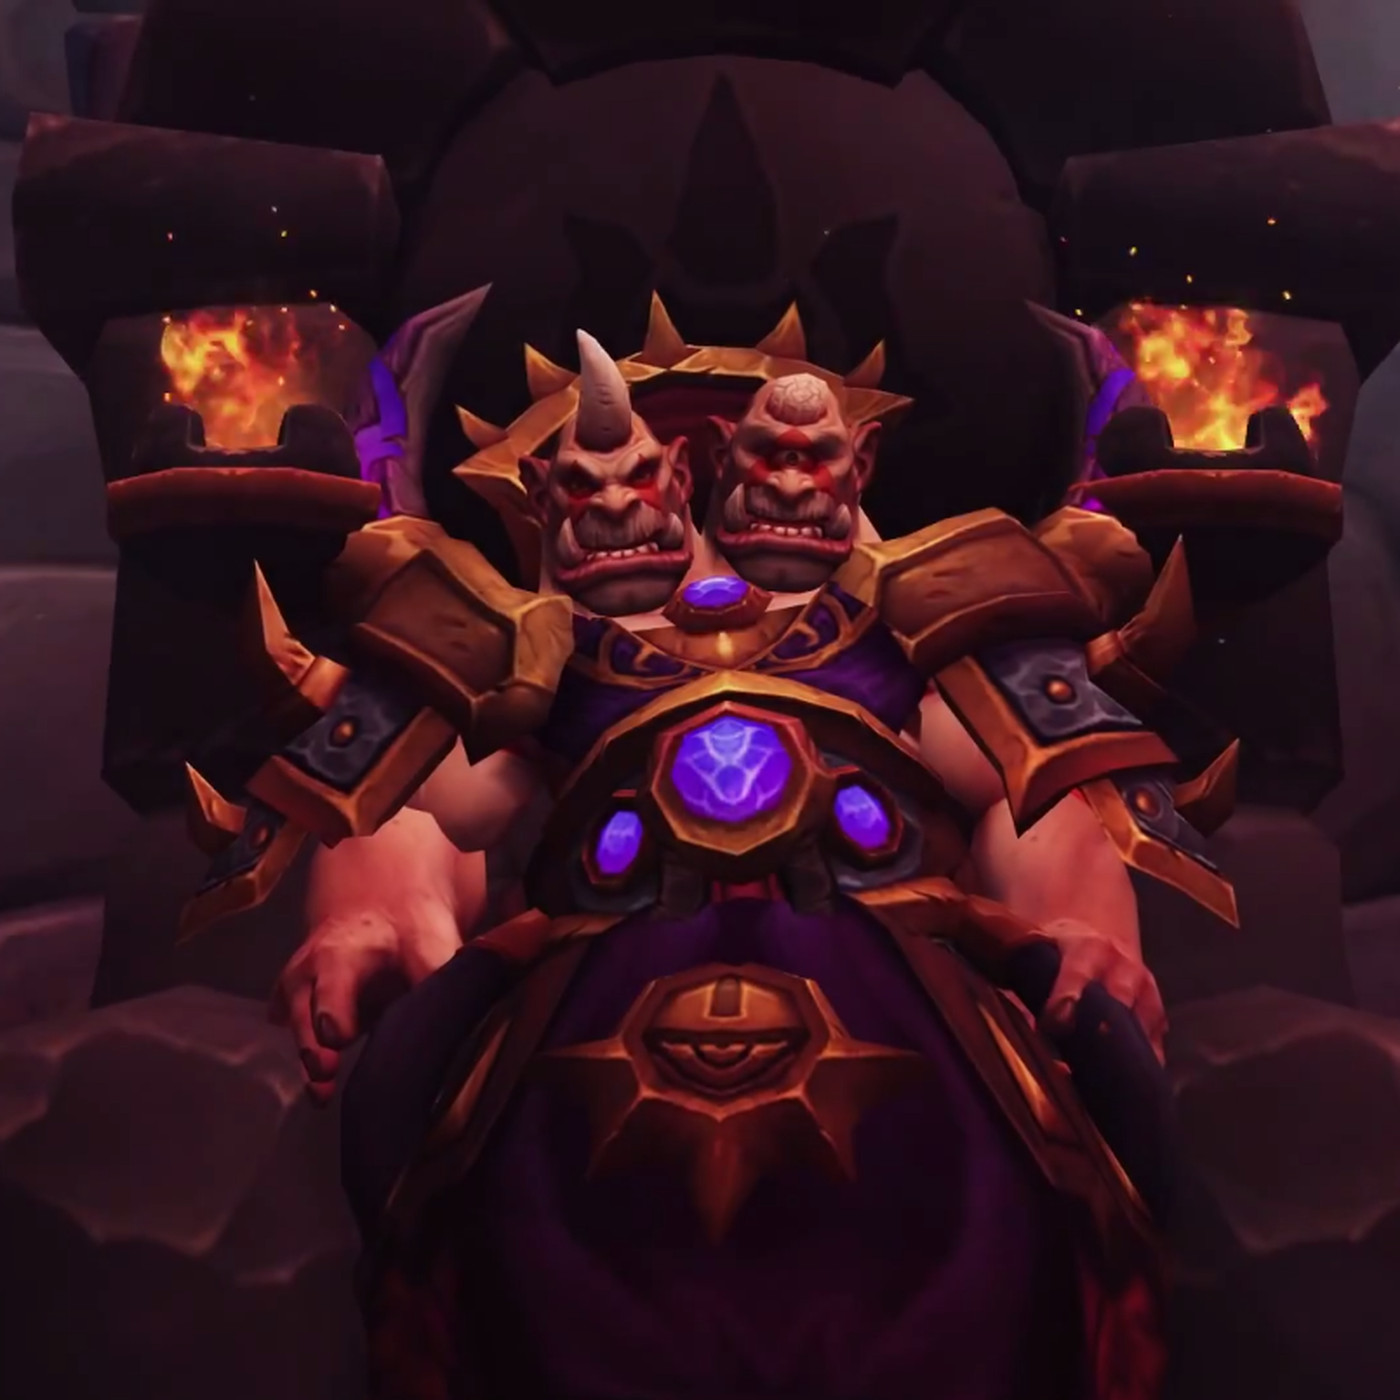 Blizzard burned its biggest fans with World of Warcraft